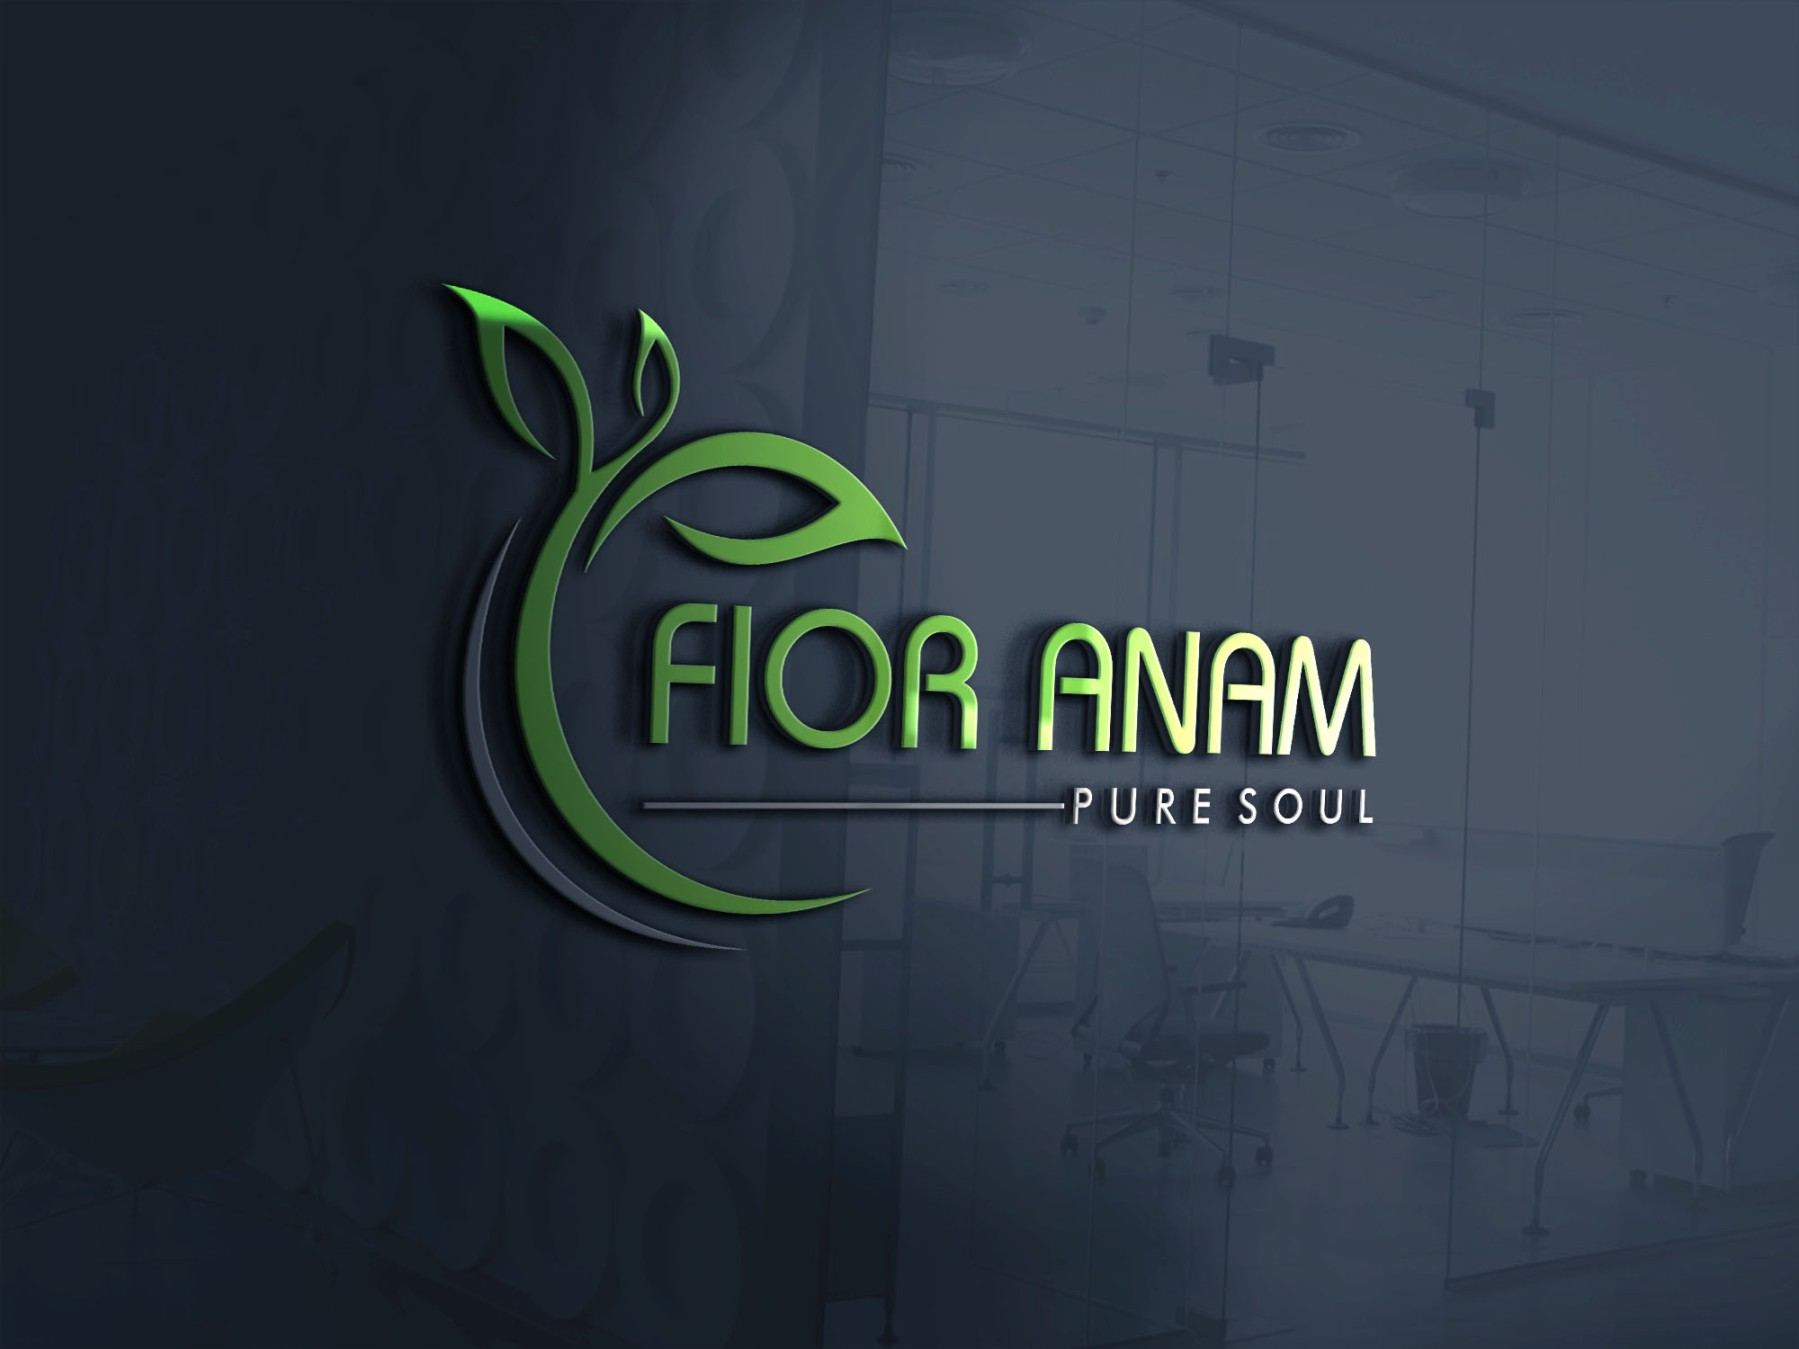 Logo Design by I graphics GRAPHICS - Entry No. 396 in the Logo Design Contest Creative Logo Design for Fior Anam.